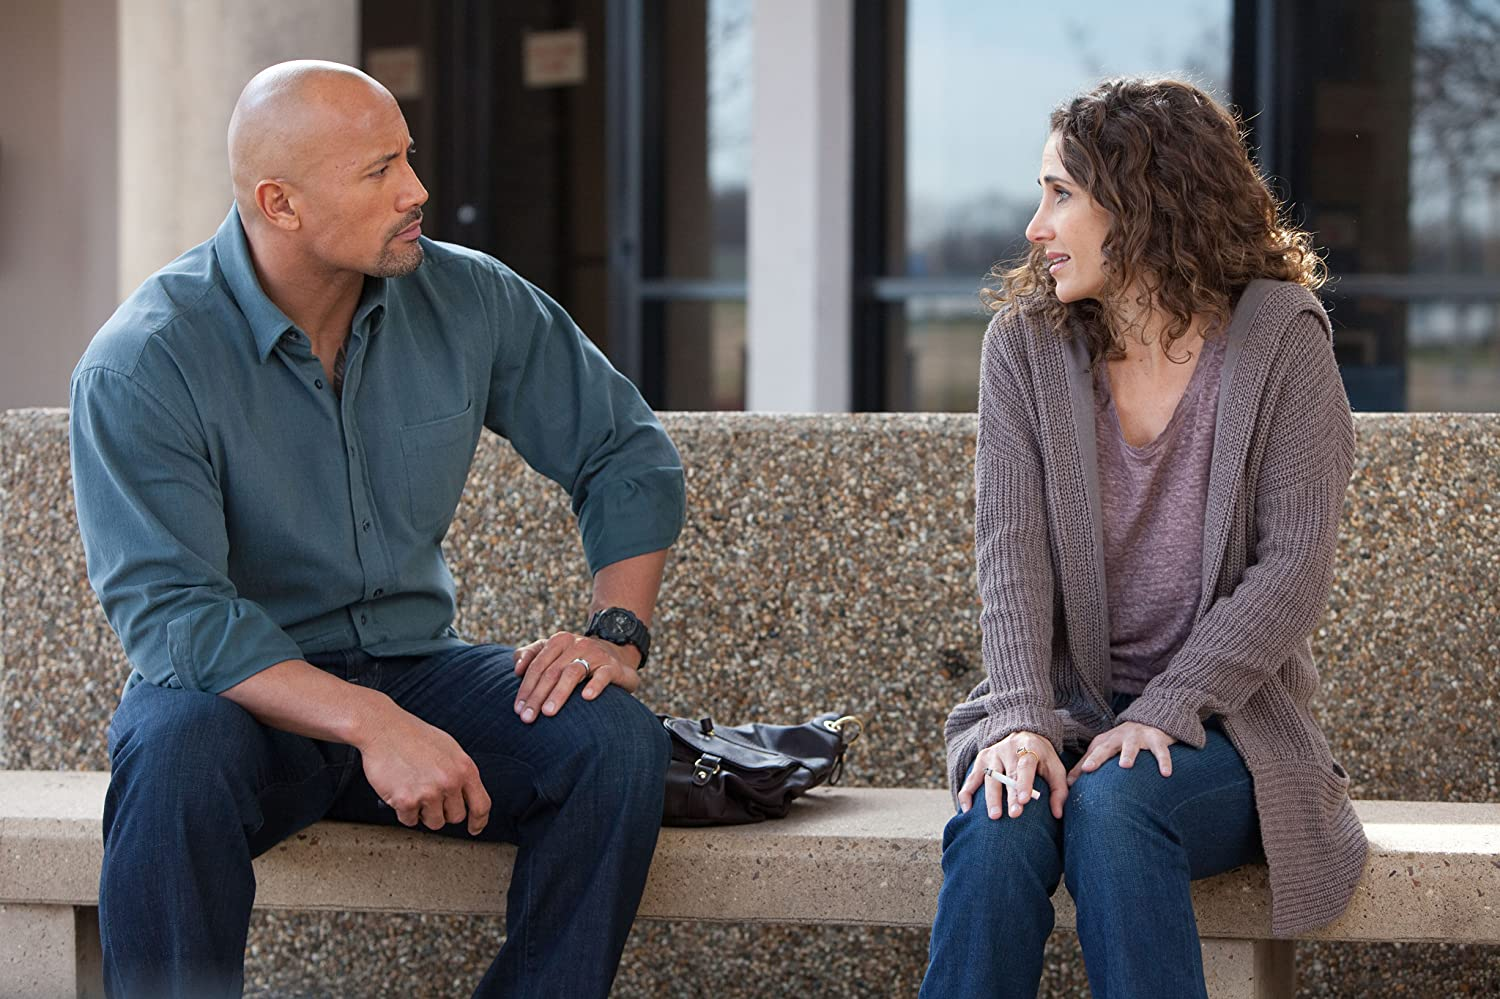 Melina Kanakaredes and Dwayne Johnson in Snitch (2013)